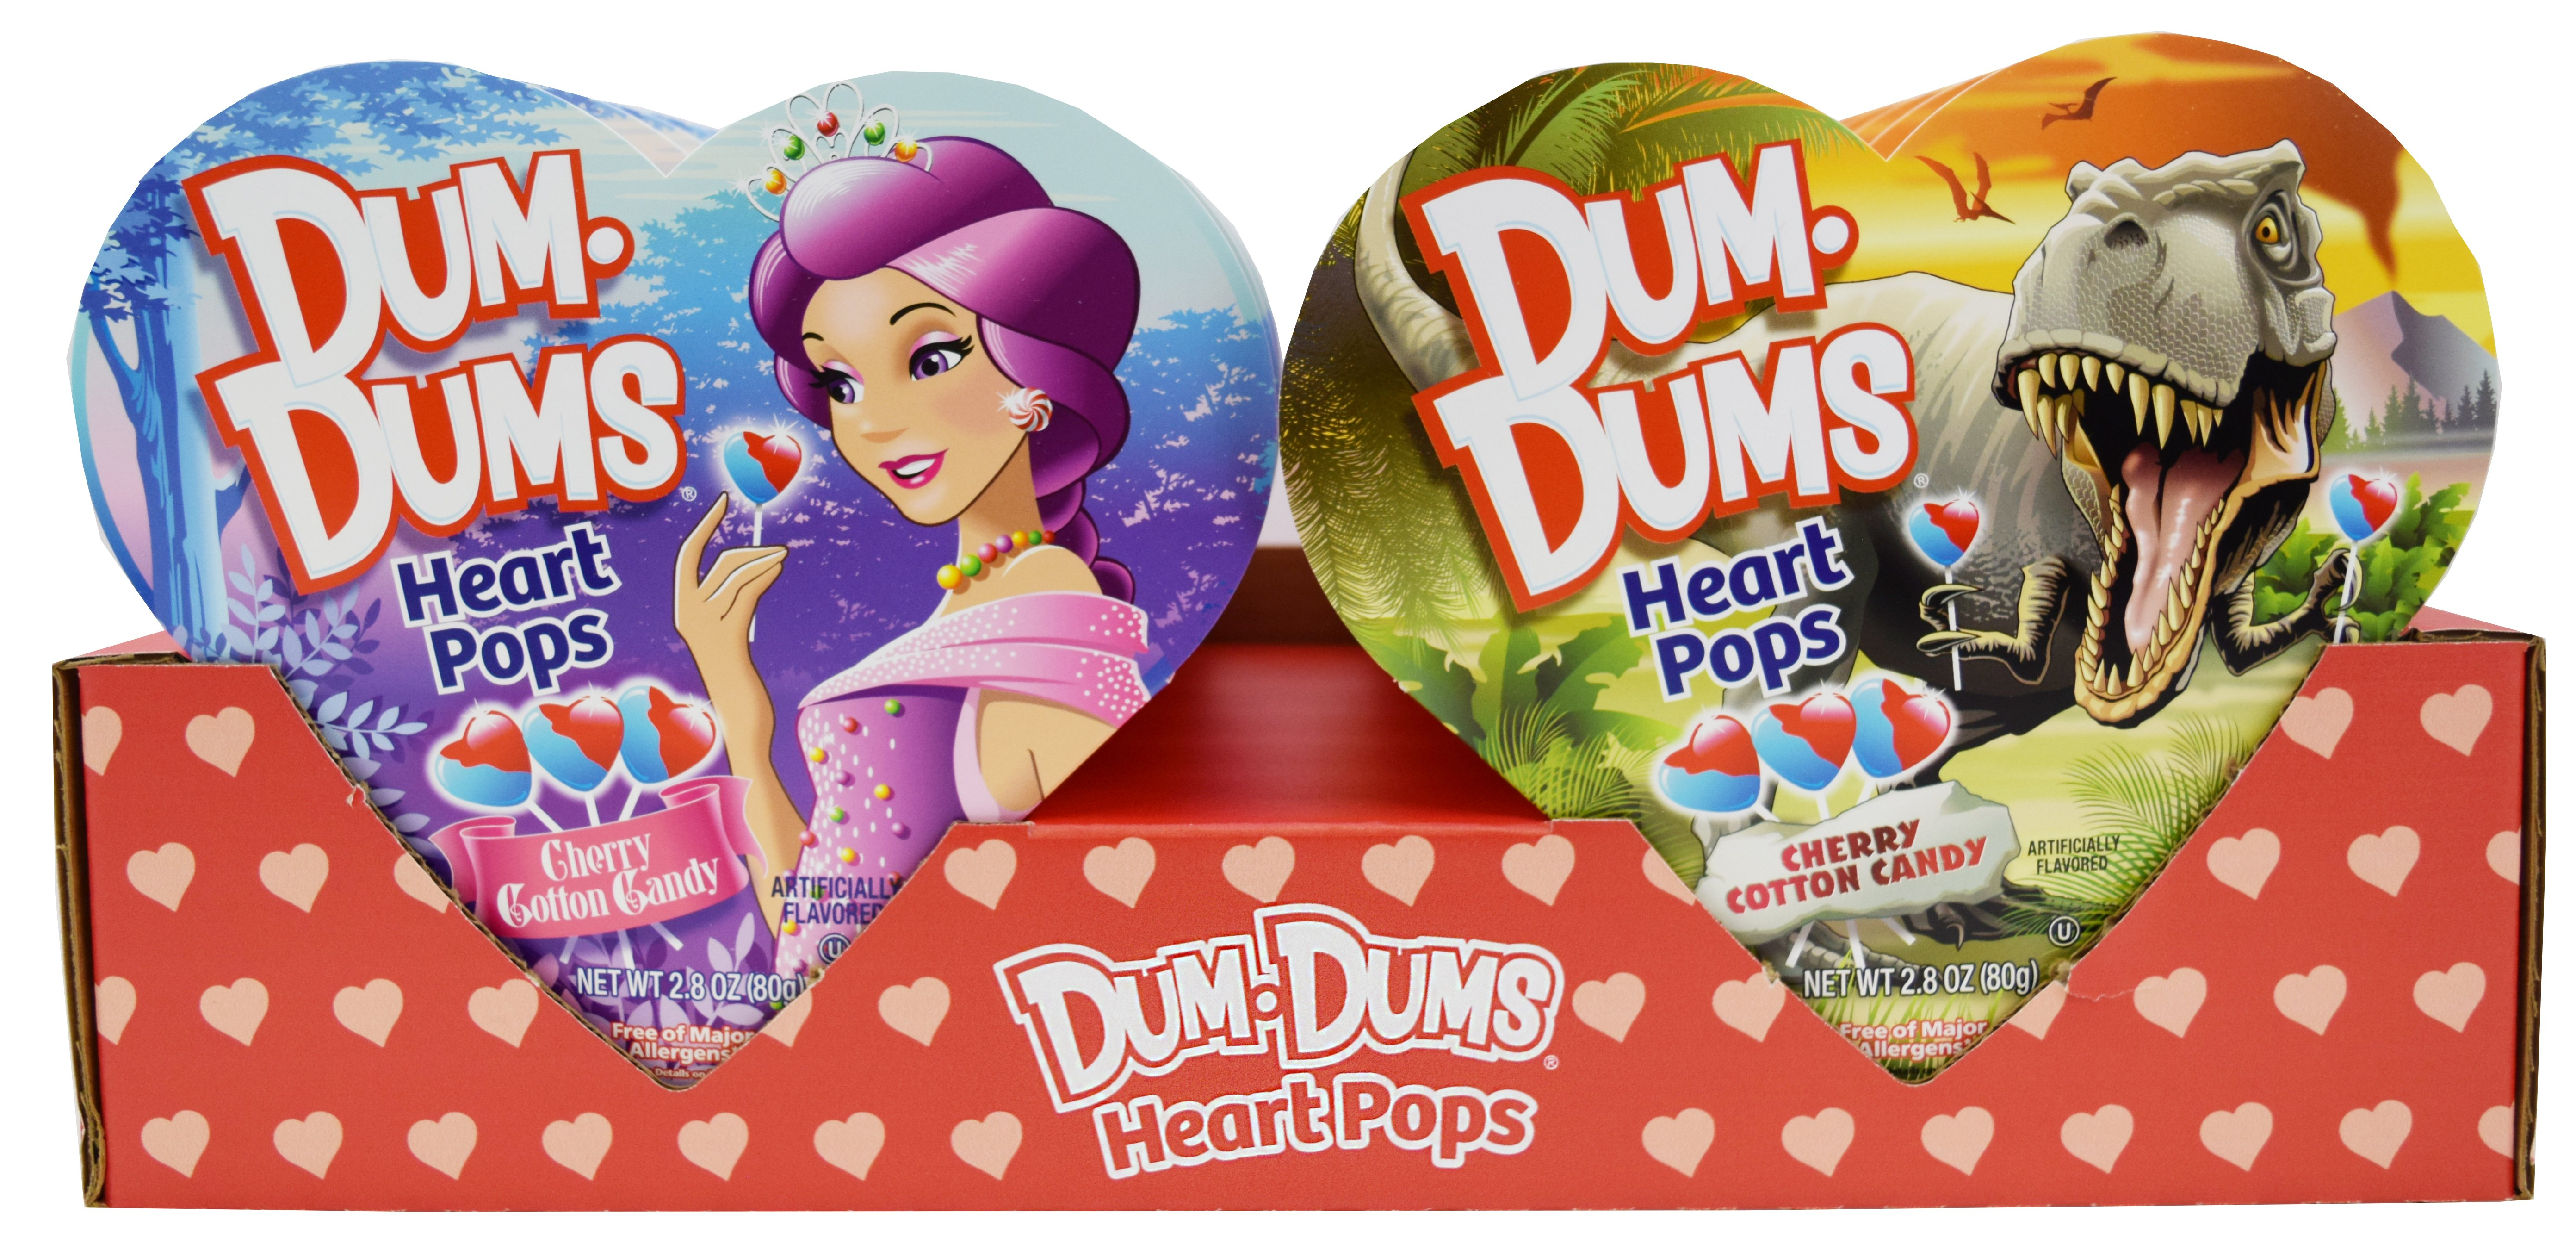 Dum Dums Heart Pops Gift Box 2 8oz Candy Store